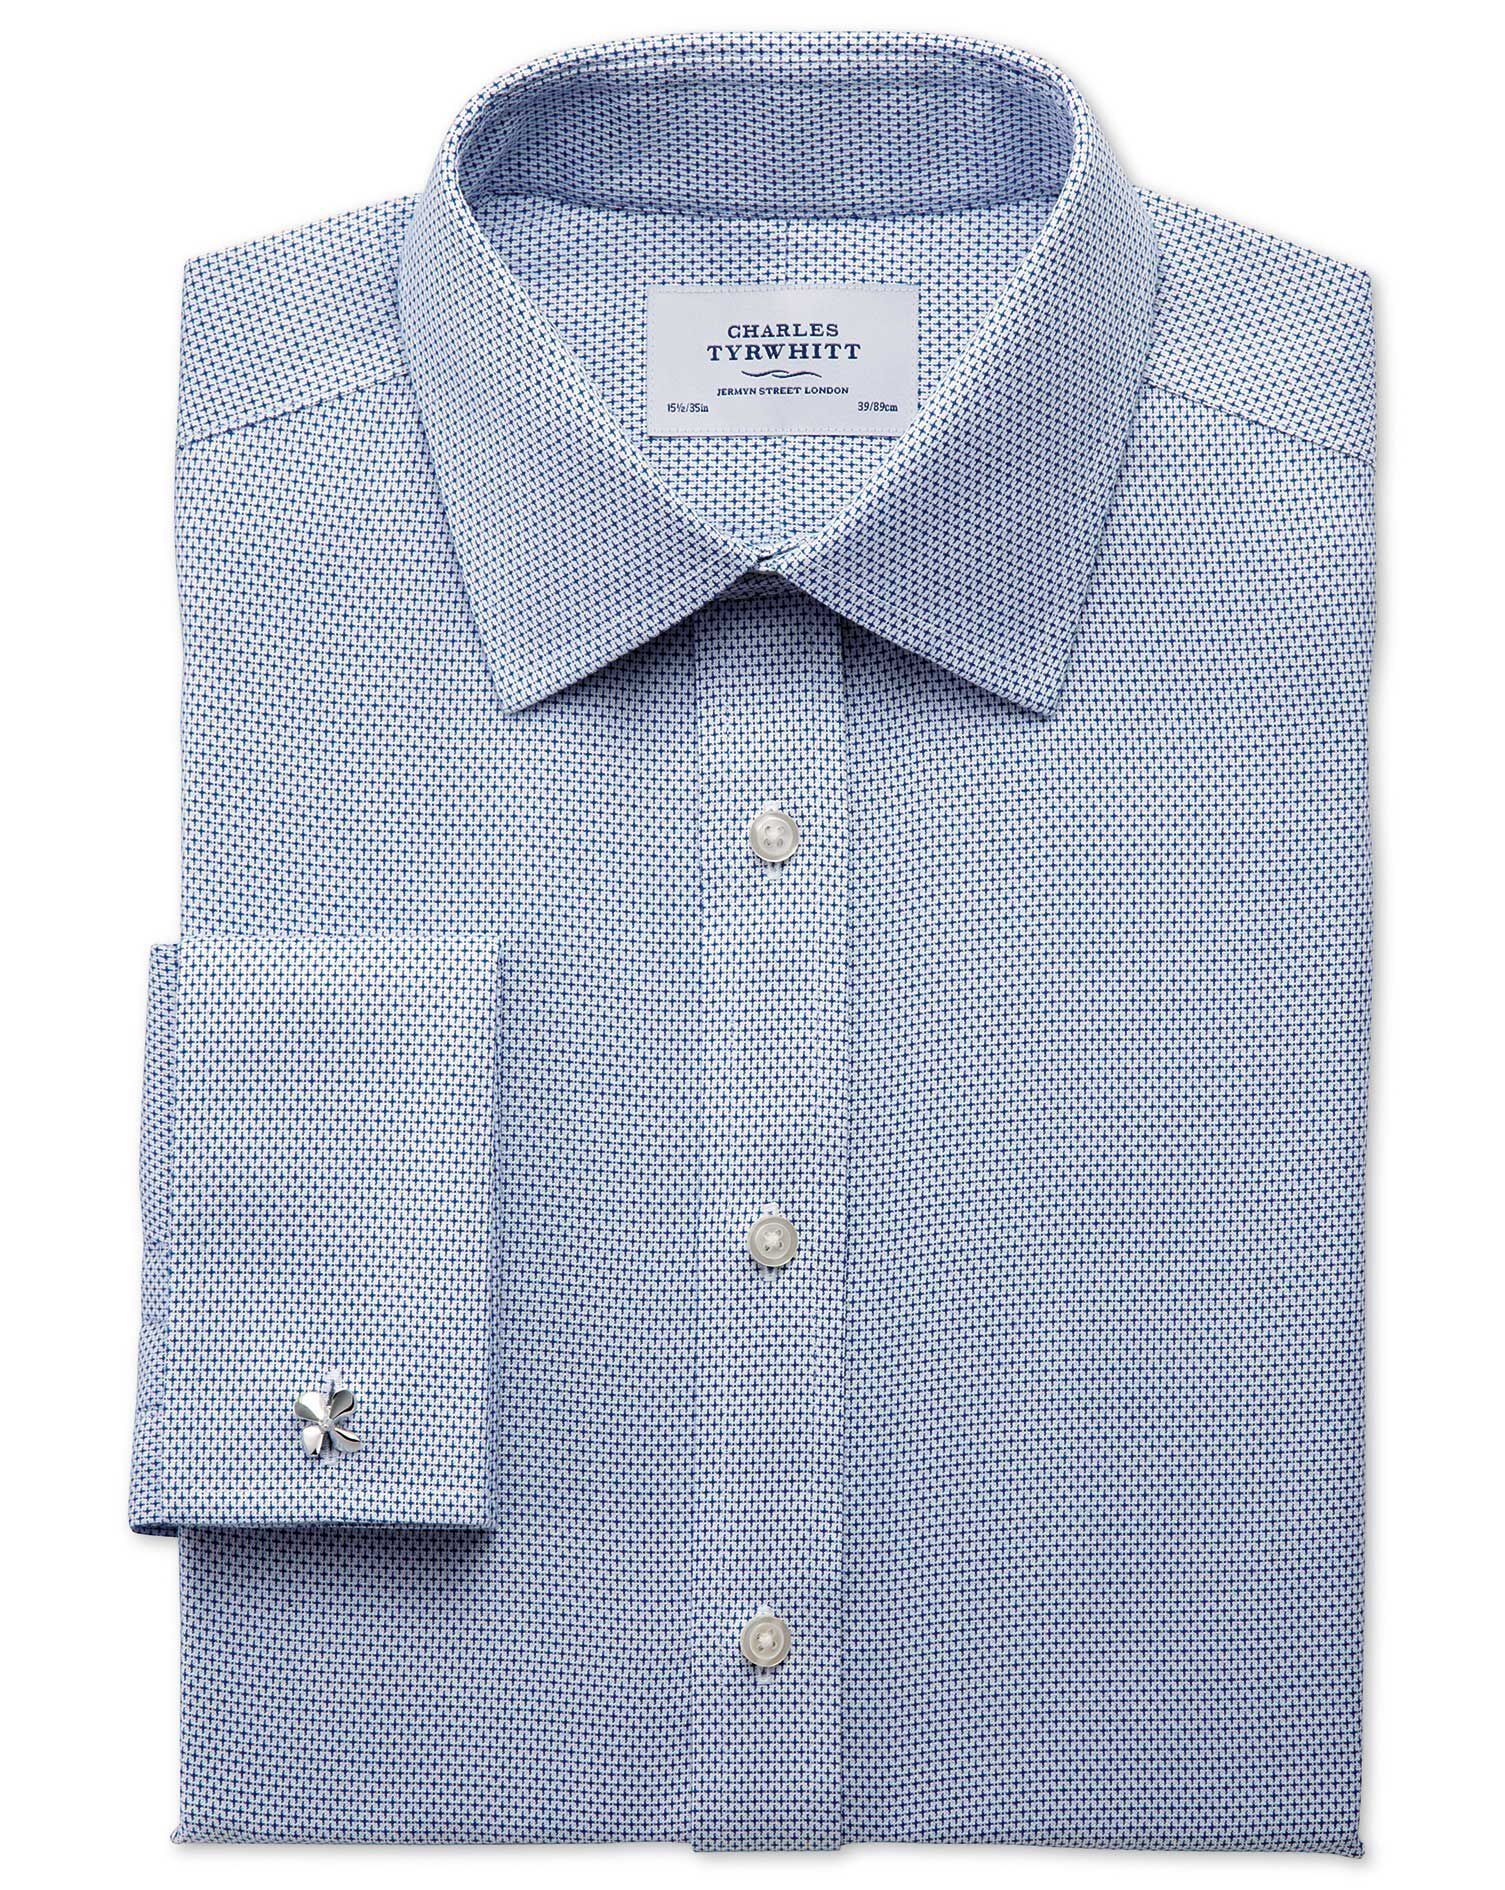 Slim Fit Non-Iron Imperial Weave Blue Cotton Formal Shirt Single Cuff Size 16.5/34 by Charles Tyrwhi